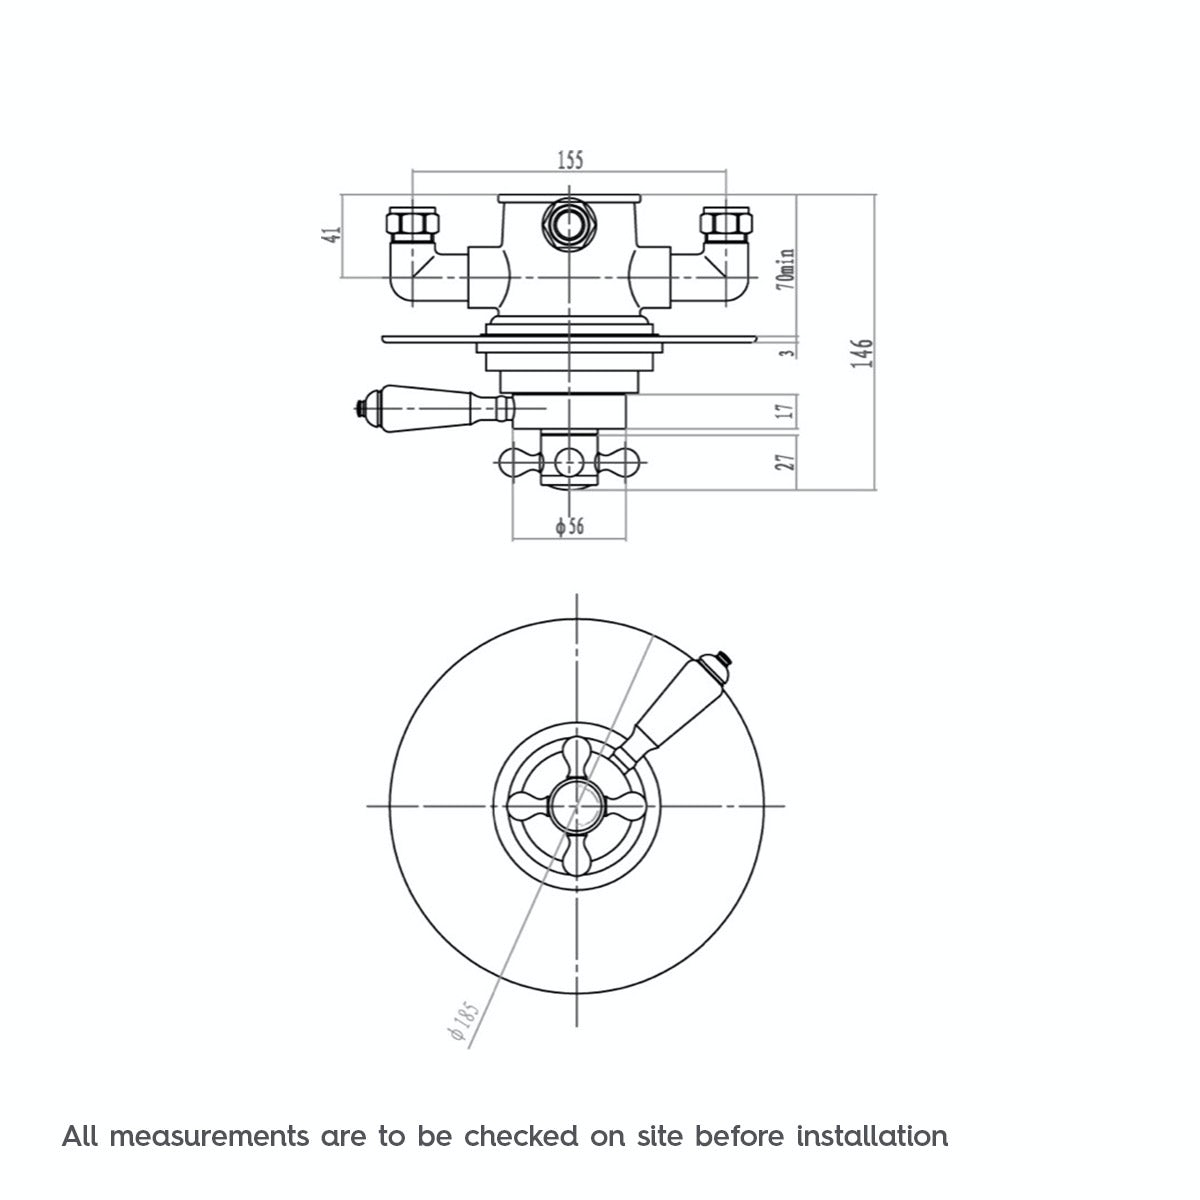 Dimensions for The Bath Co. Dulwich thermostatic concealed shower valve